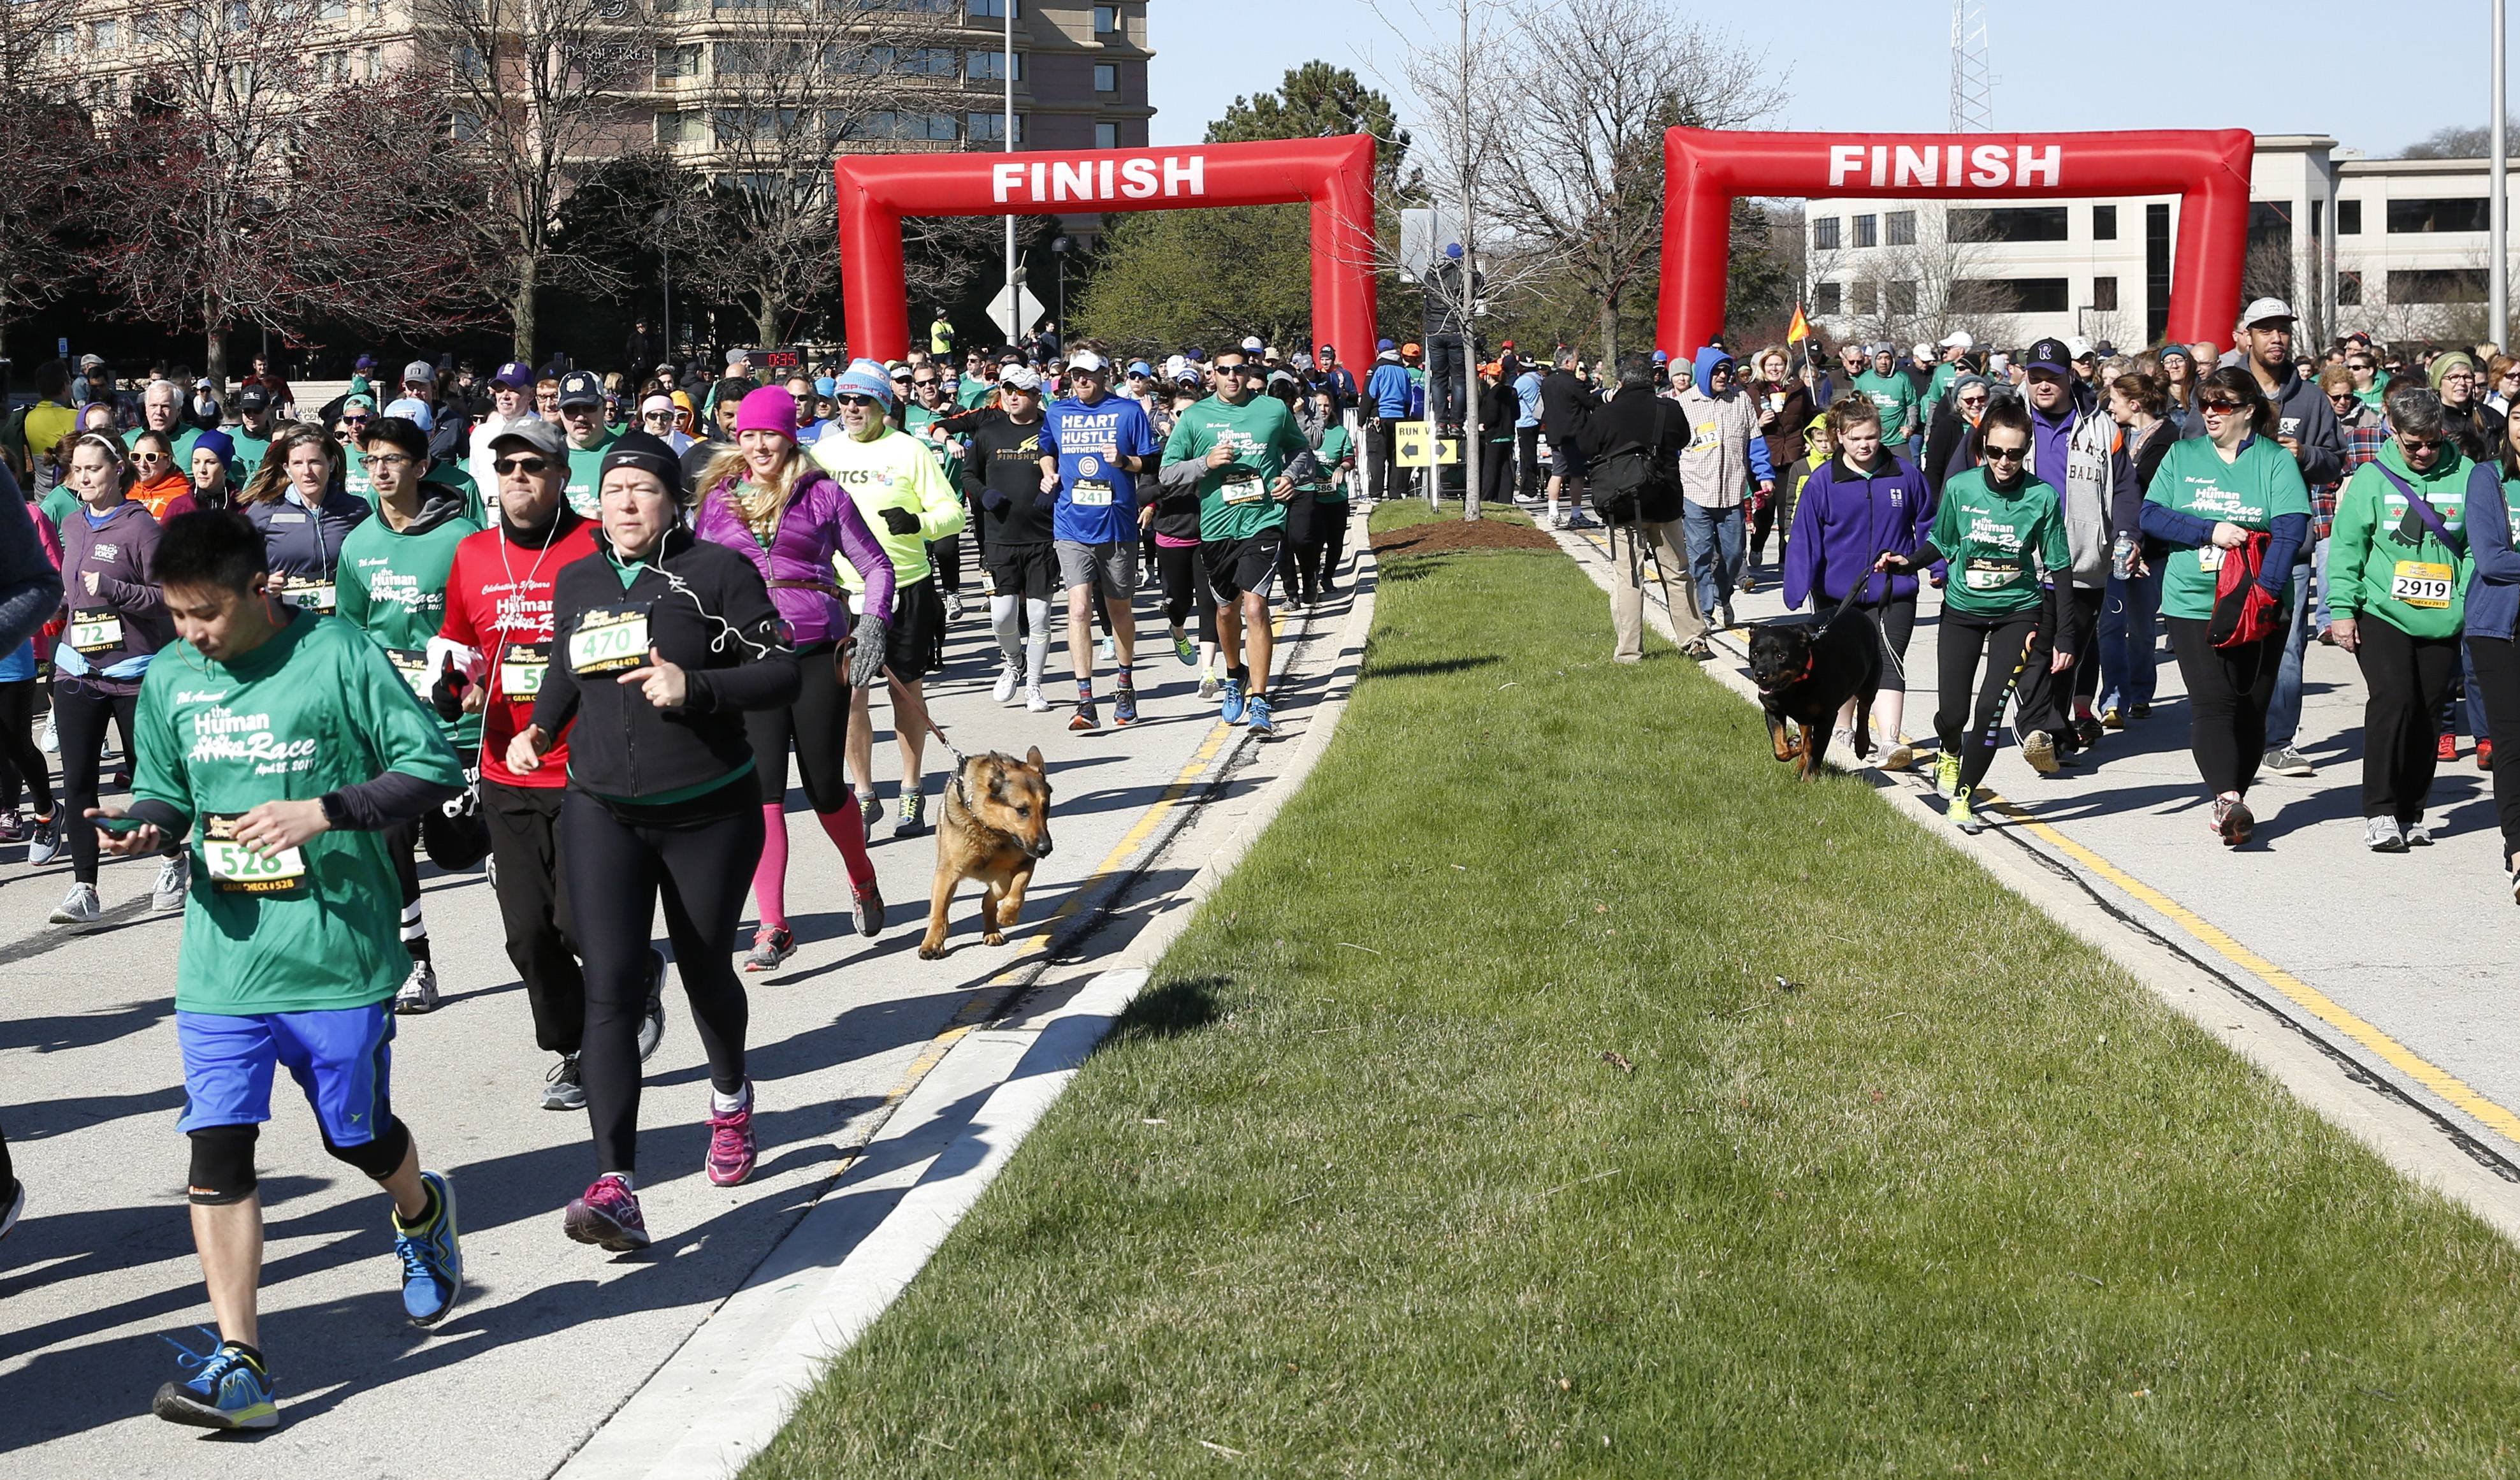 Roughly 1,900 runners and walkers are expected to participate Saturday in Giving DuPage's Human Race in Downers Grove. The 5K run and 2-mile fitness walk helps raise money for 55 charities.